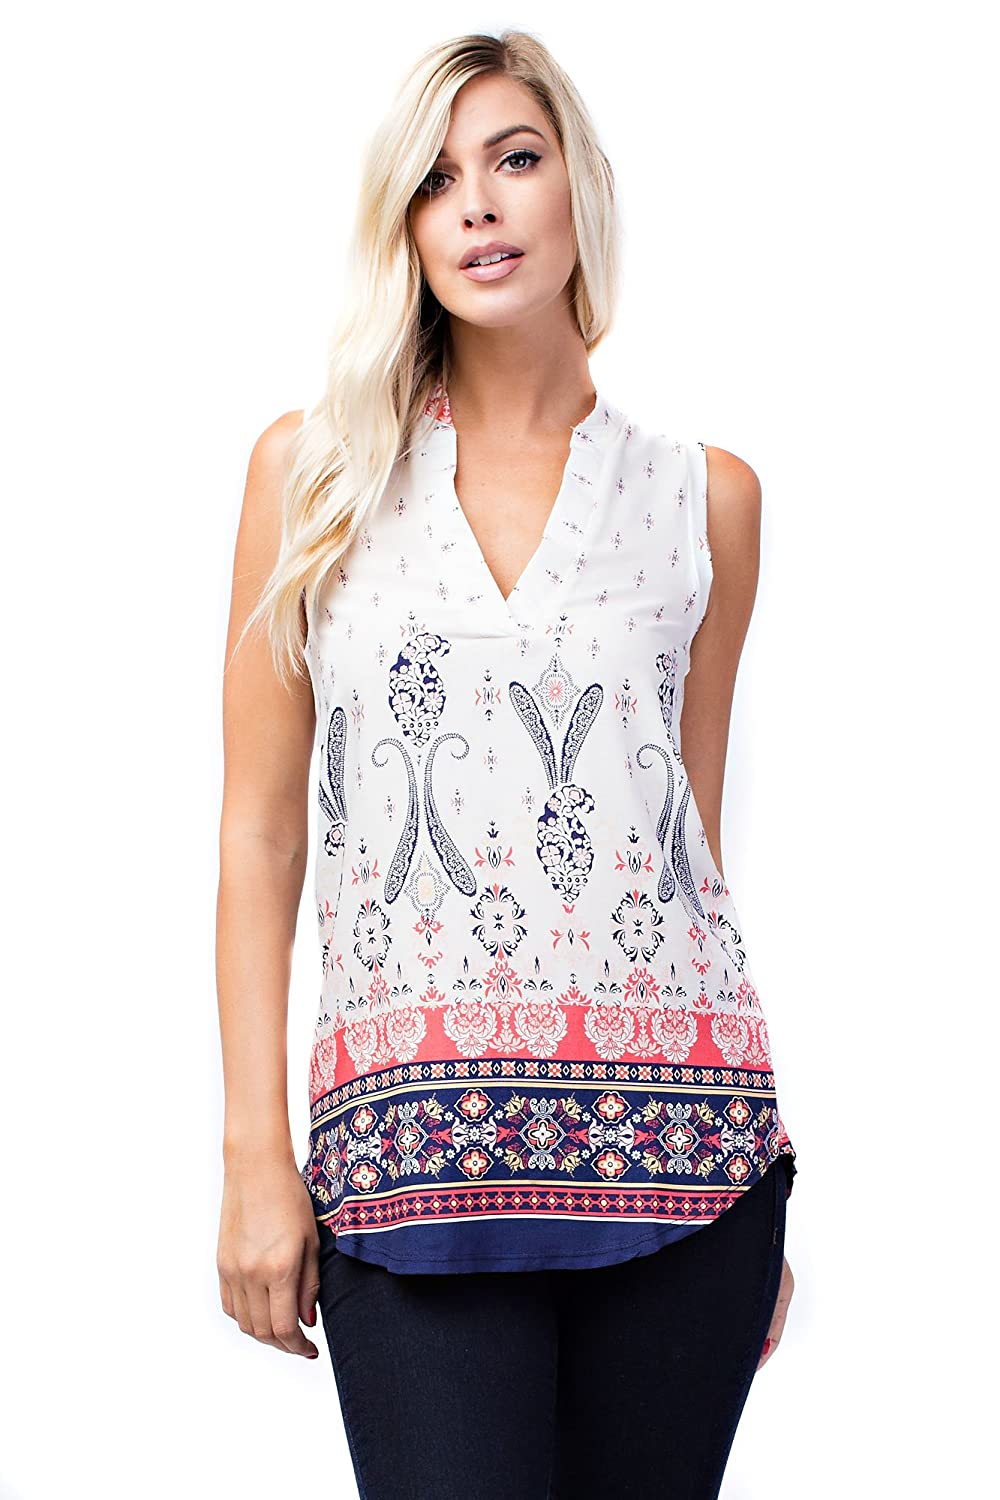 B7084 Ivory Navy Coral Allora Betsy Red Couture Women's Soft Knit Sleeveless Notch Neck Tunic Top